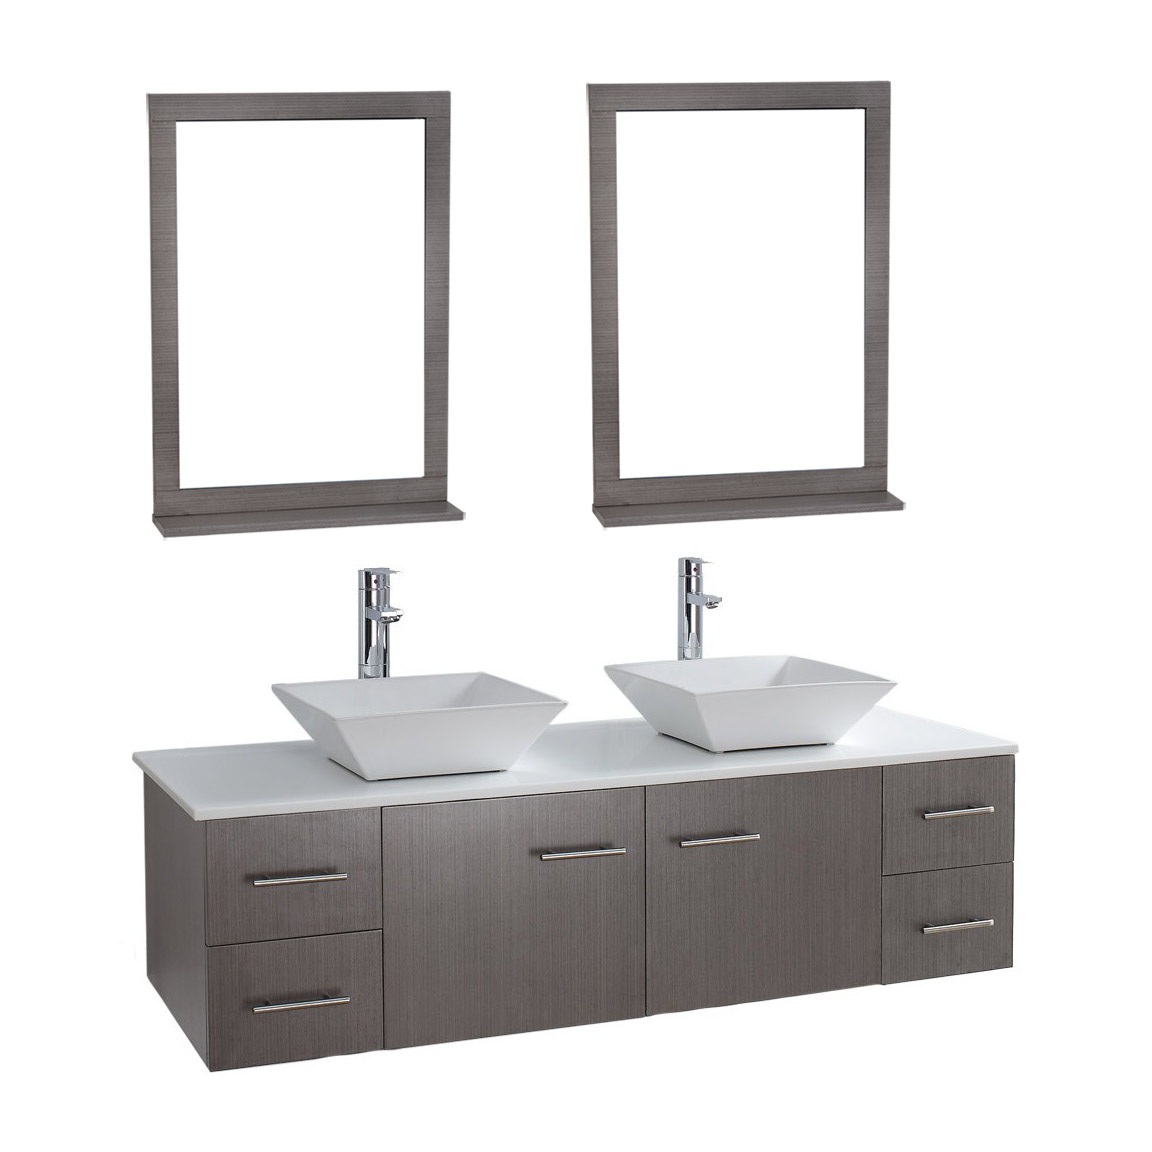 Siena Solid Wood 71 Wall Mounted Double Bathroom Vanity Mirror Set Vm Vaw1 72 Lgo